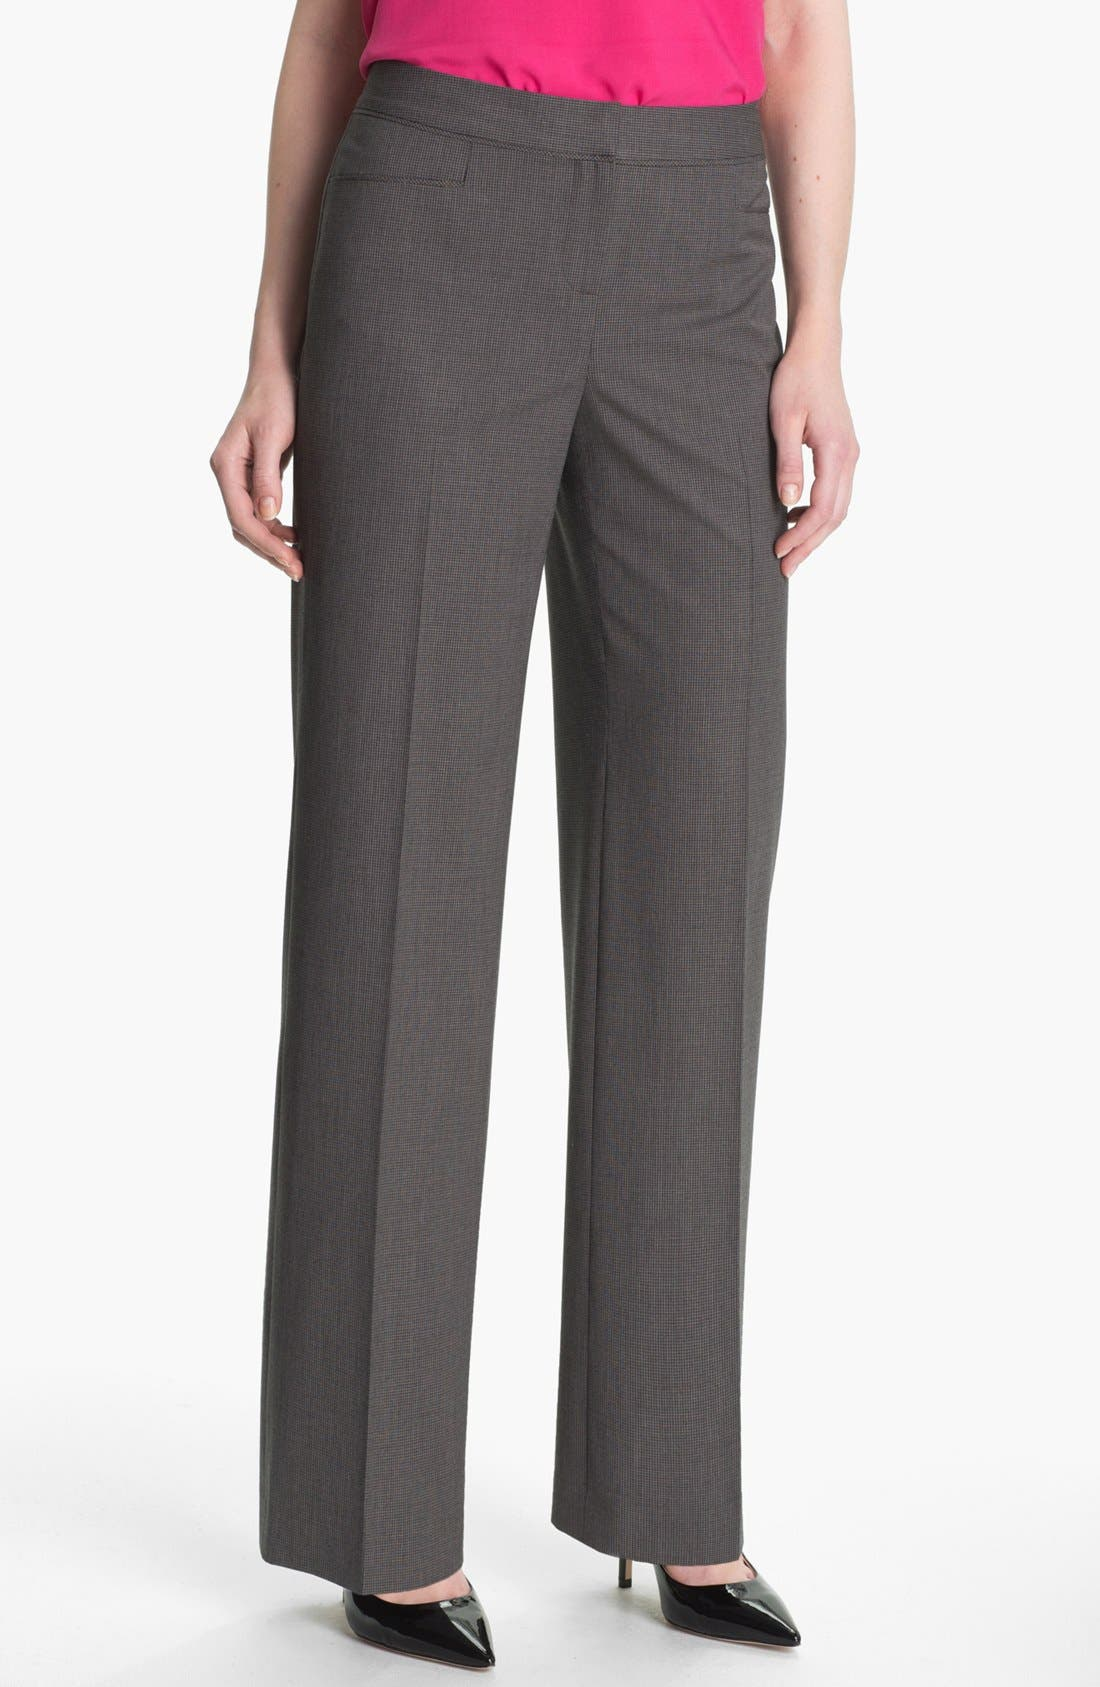 Alternate Image 1 Selected - Halogen® 'Taylor' Mini Check Curvy Fit Pants (Petite)